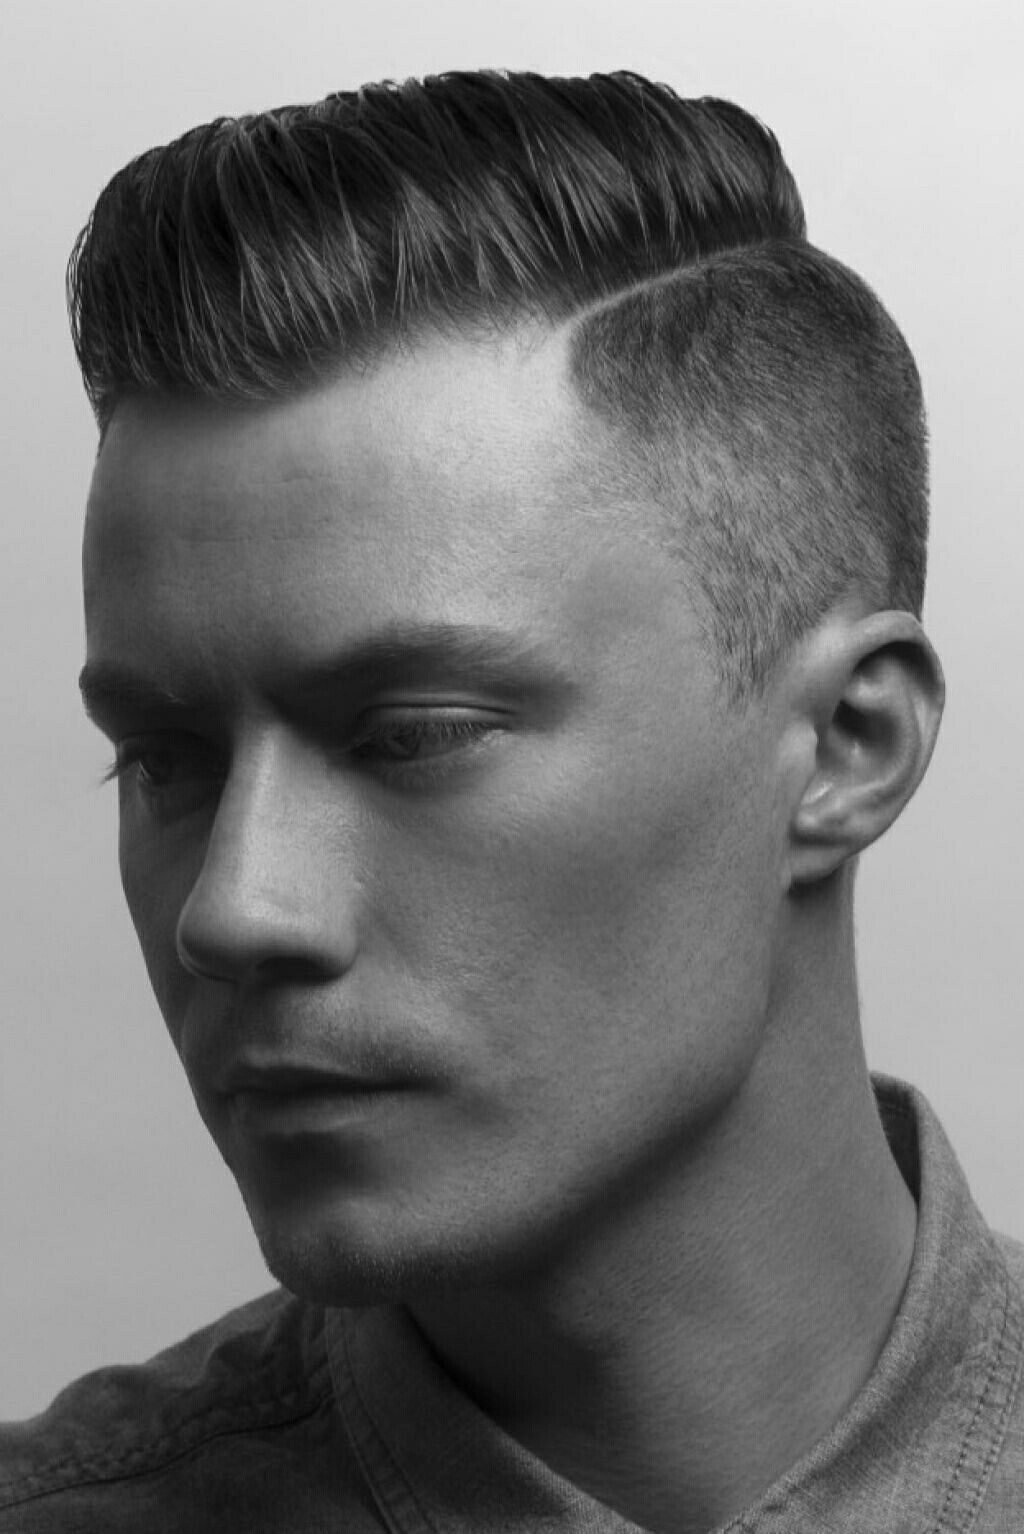 Hairstyles with quiff - Quiff Hairstyles